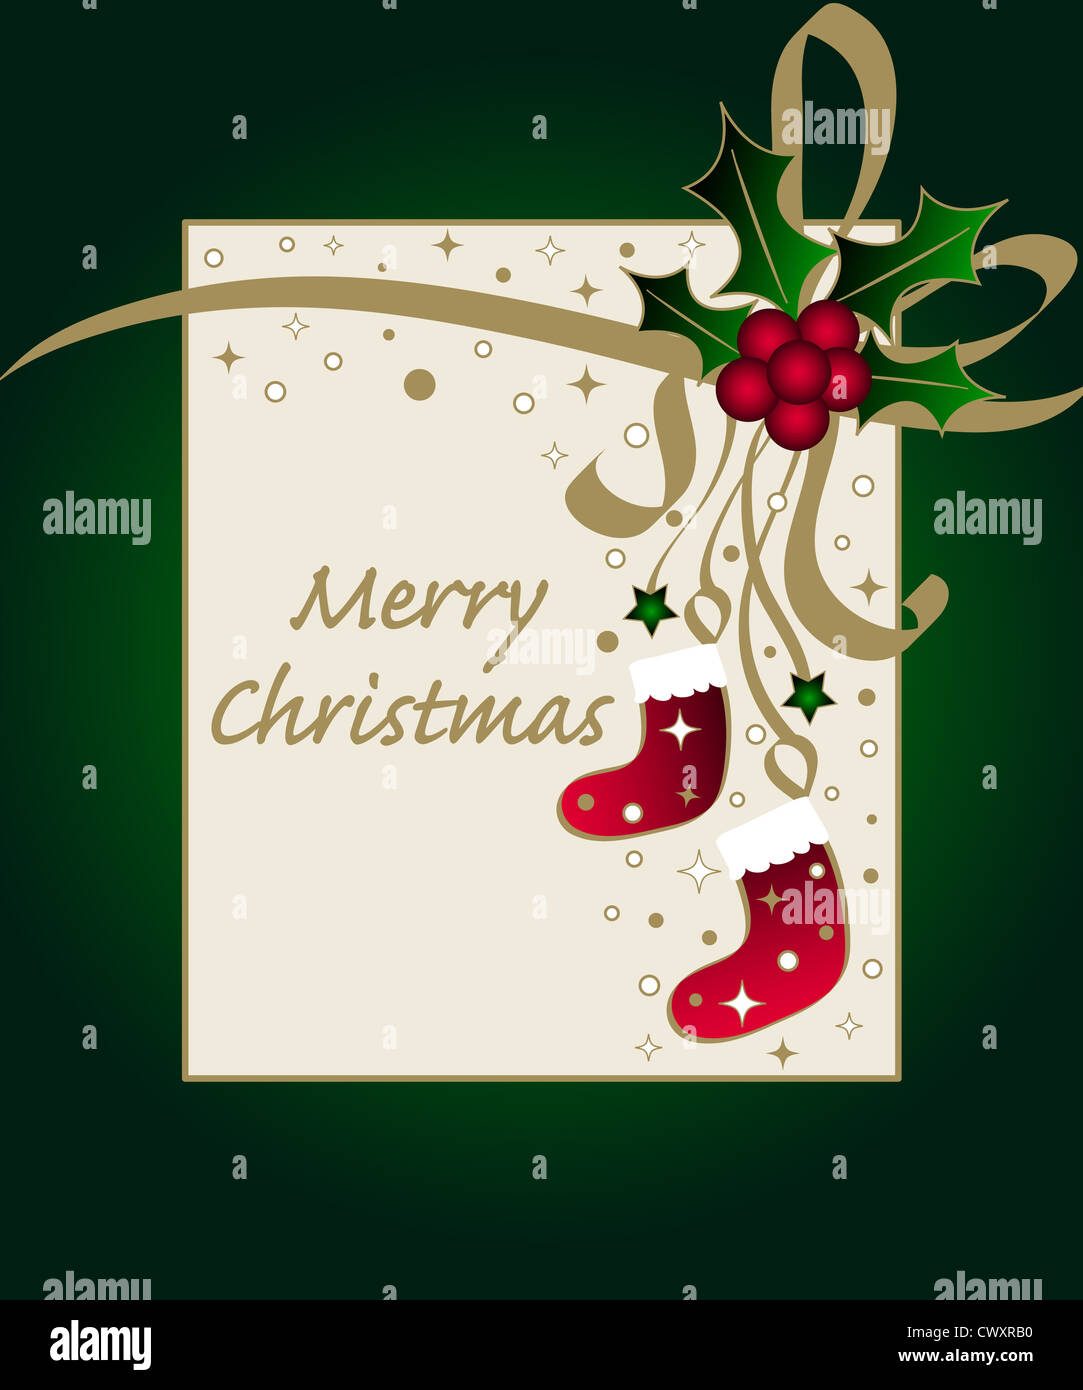 Christmas holly and stockings frame Stock Photo